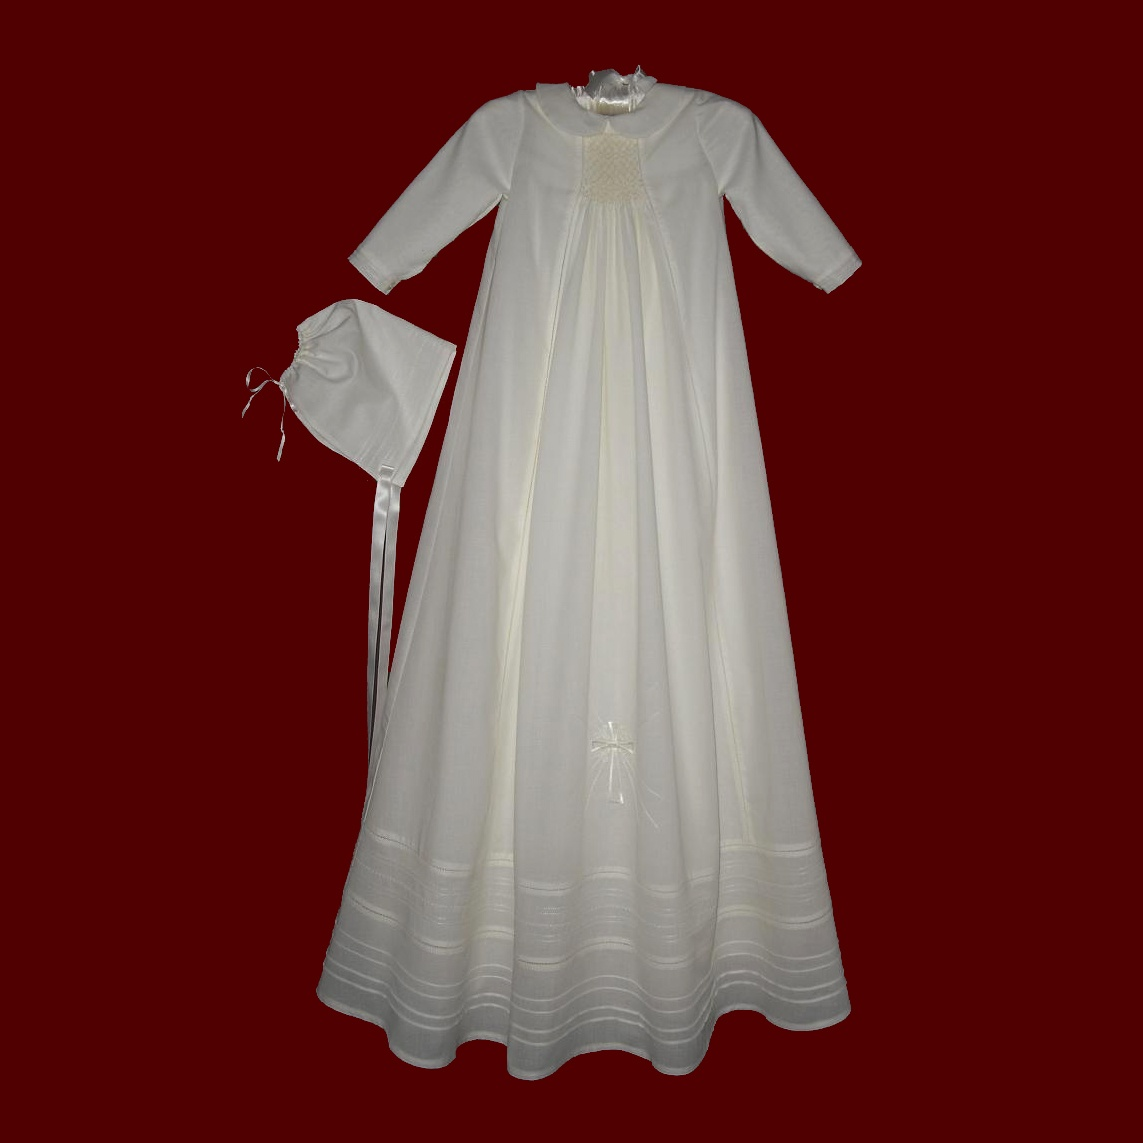 All Ivory Cotton Batiste Boys Smocked Gown, Long Sleeve & Gown Length